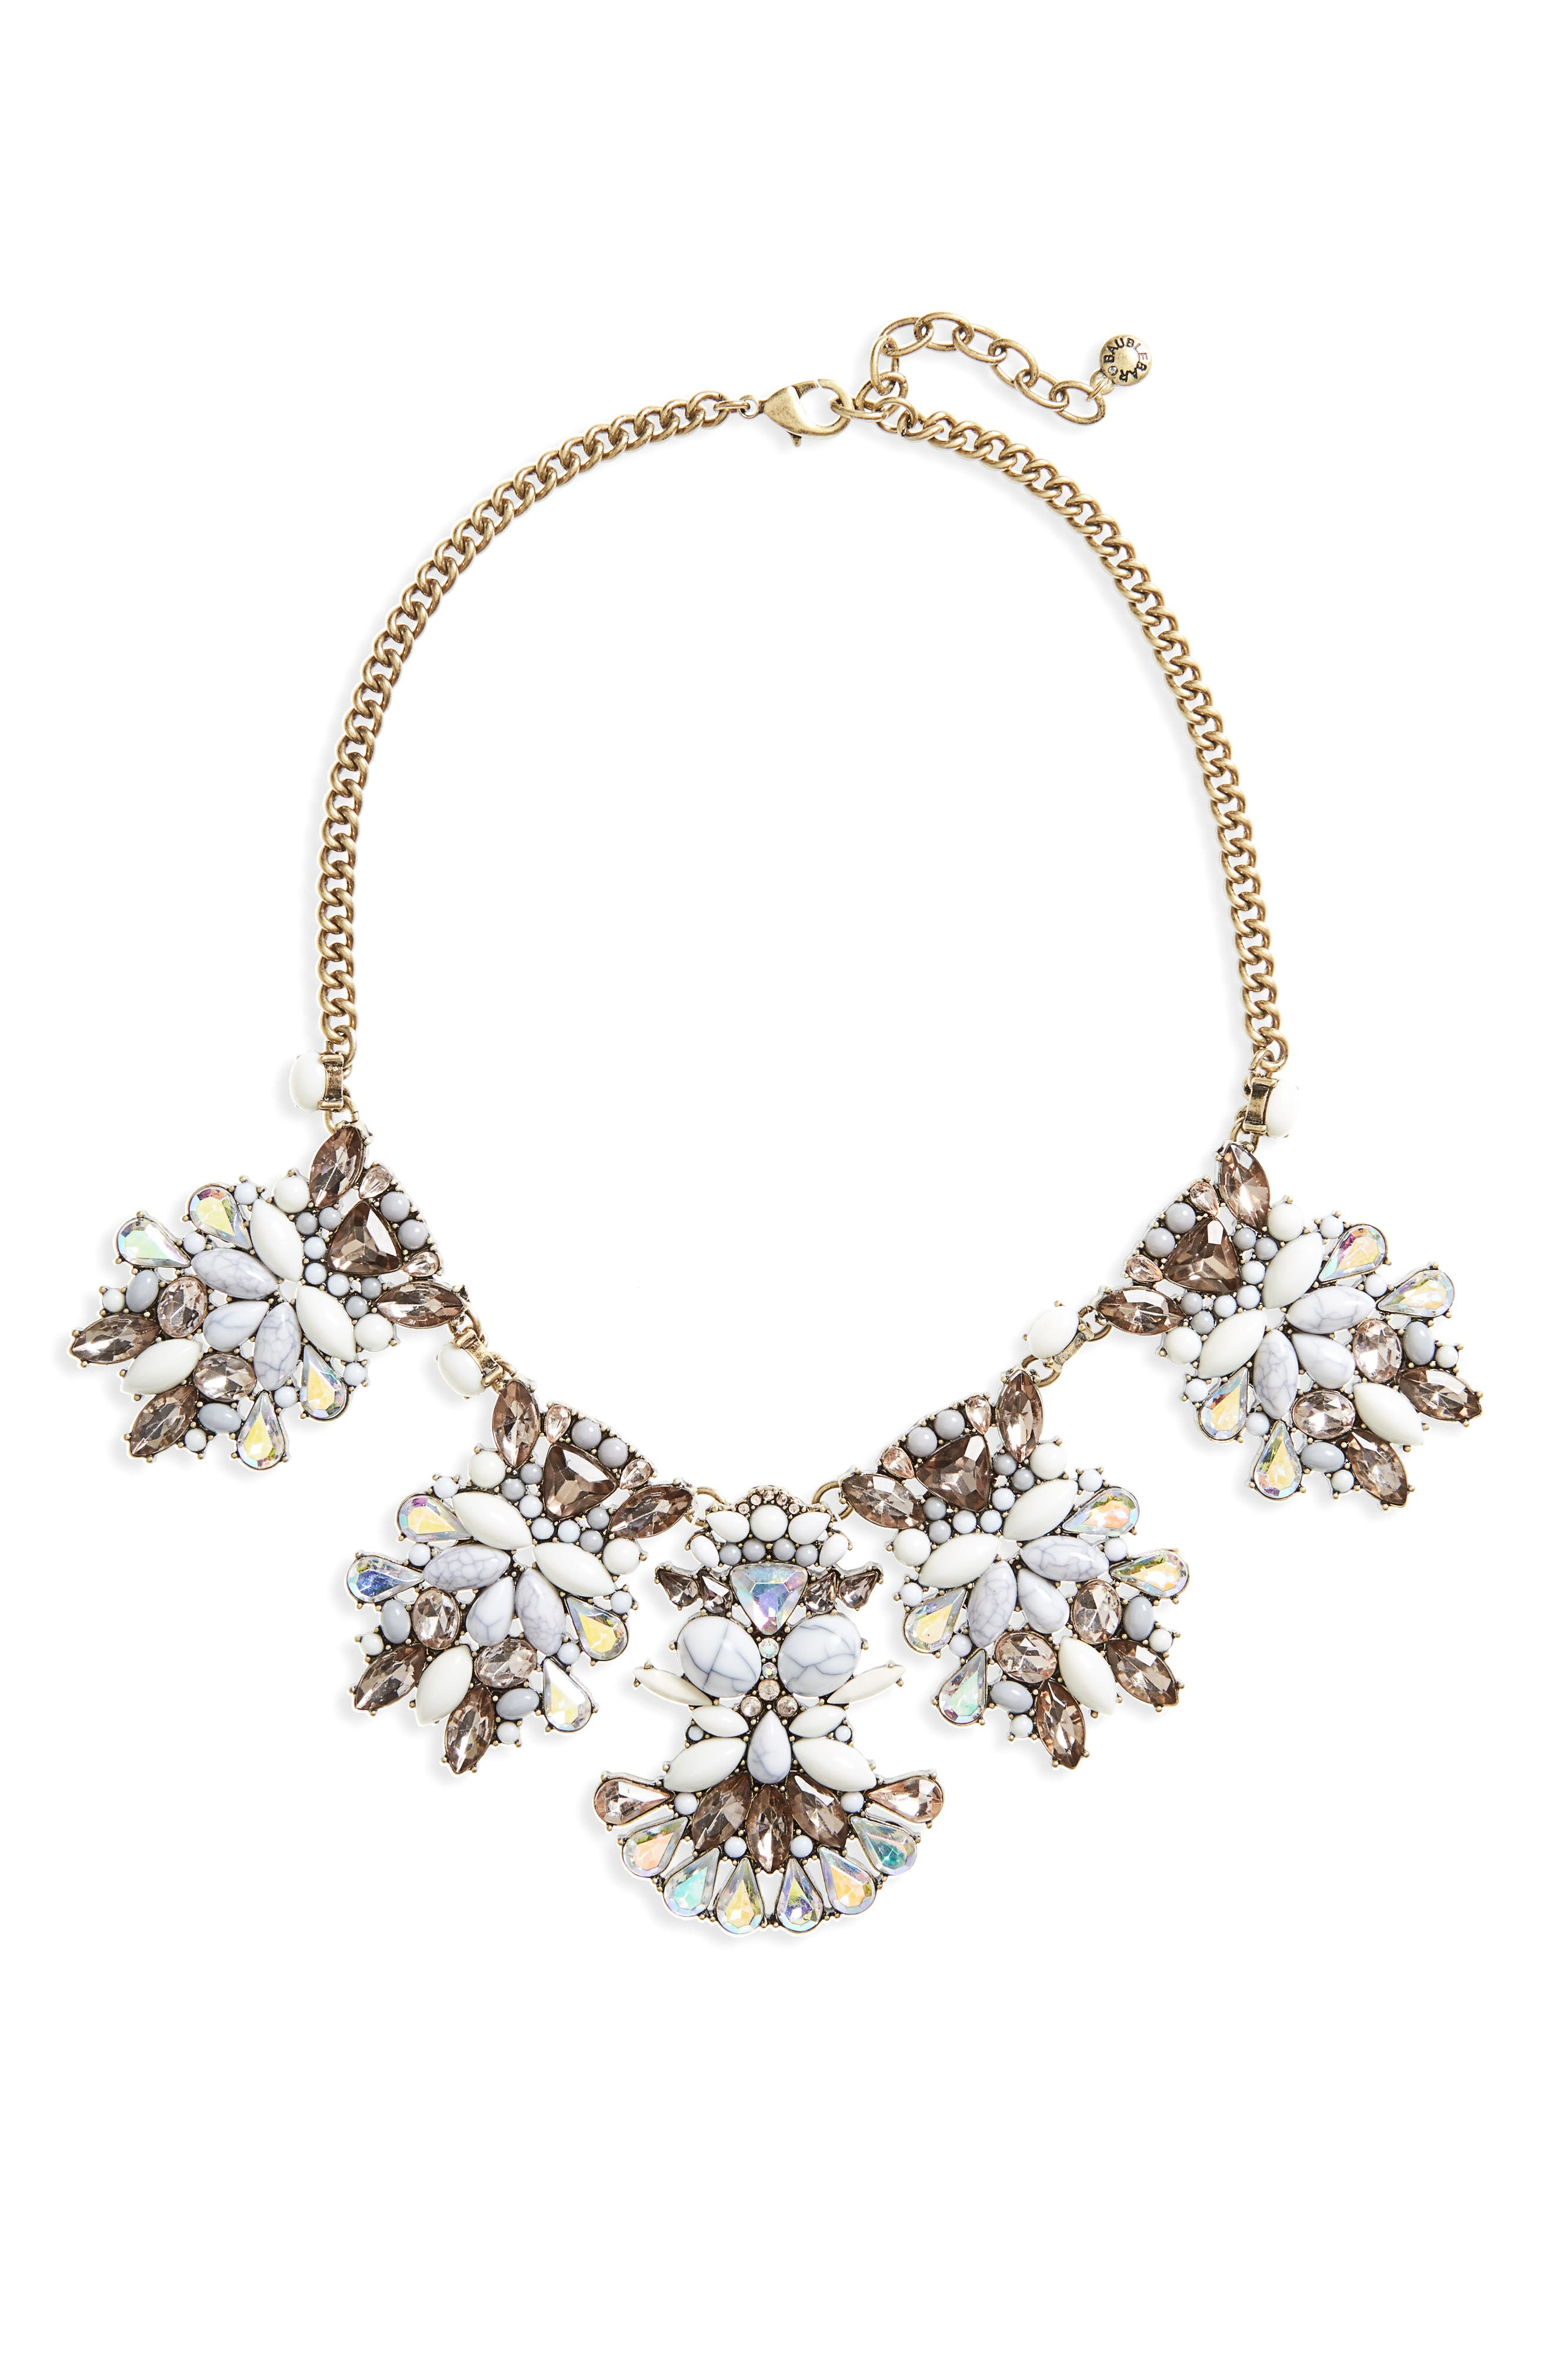 Main Image - BaubleBar Daisy Bib Necklace